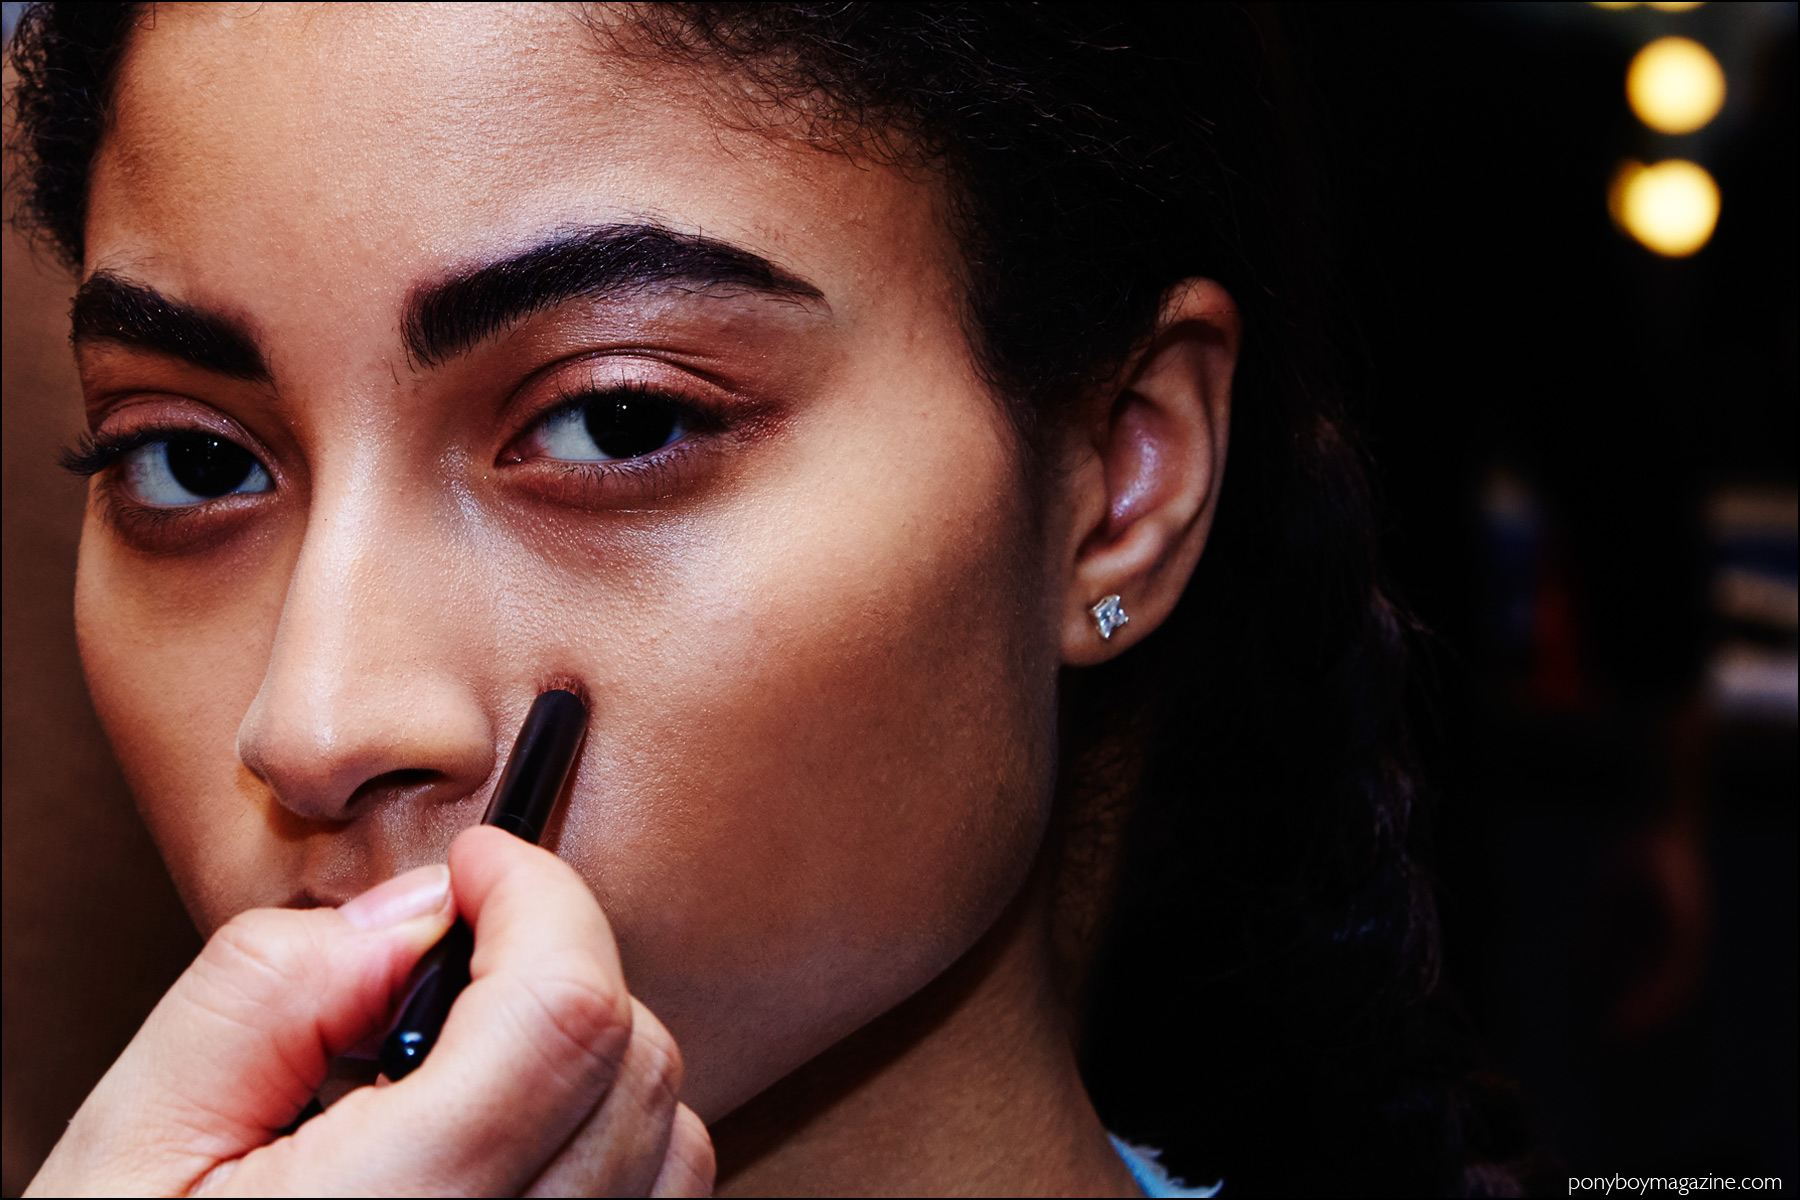 A model snapped backstage in makeup, at A Détacher Fall 2016 womenswear show. Photography by Alexander Thompson for Ponyboy magazine NY.